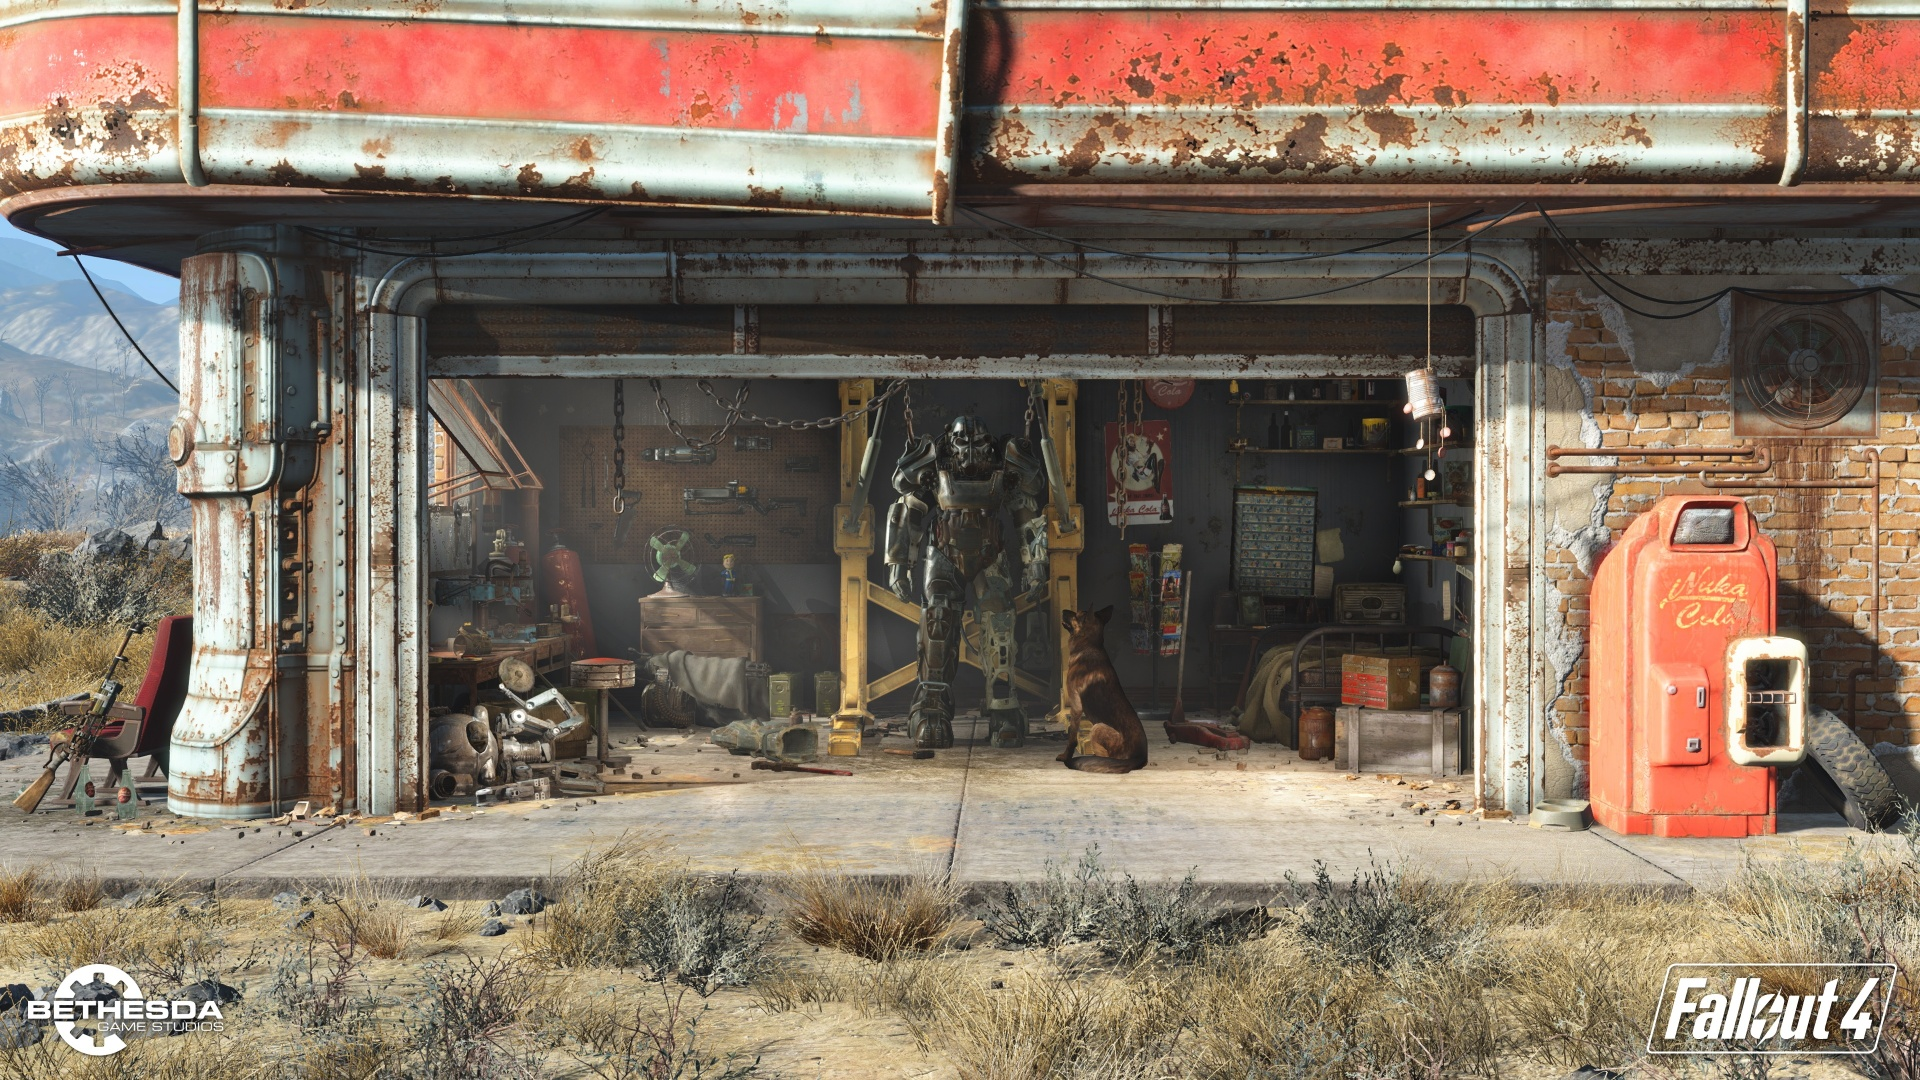 Fallout 4 2015 Wallpapers   1920x1080   1061063 1920x1080